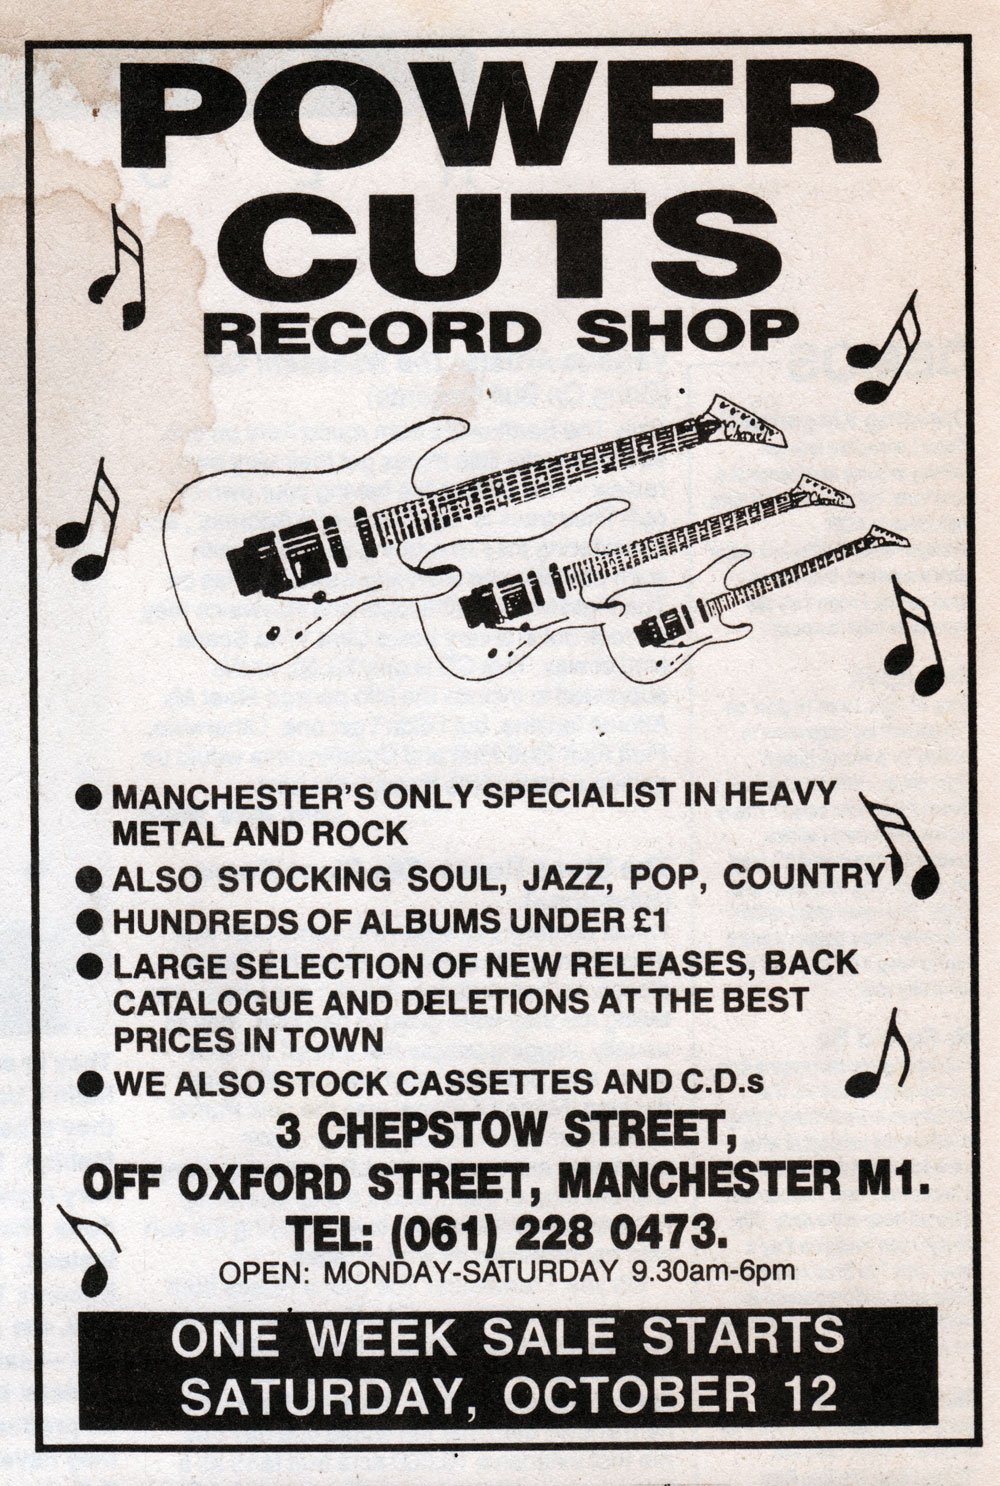 Who remembers POWER CUTS on Chepstow Street & its 'cut out' remaindered records for 49p? What classic LPs did you buy there? Advert: 1991 https://t.co/Lgmq6NyFcK